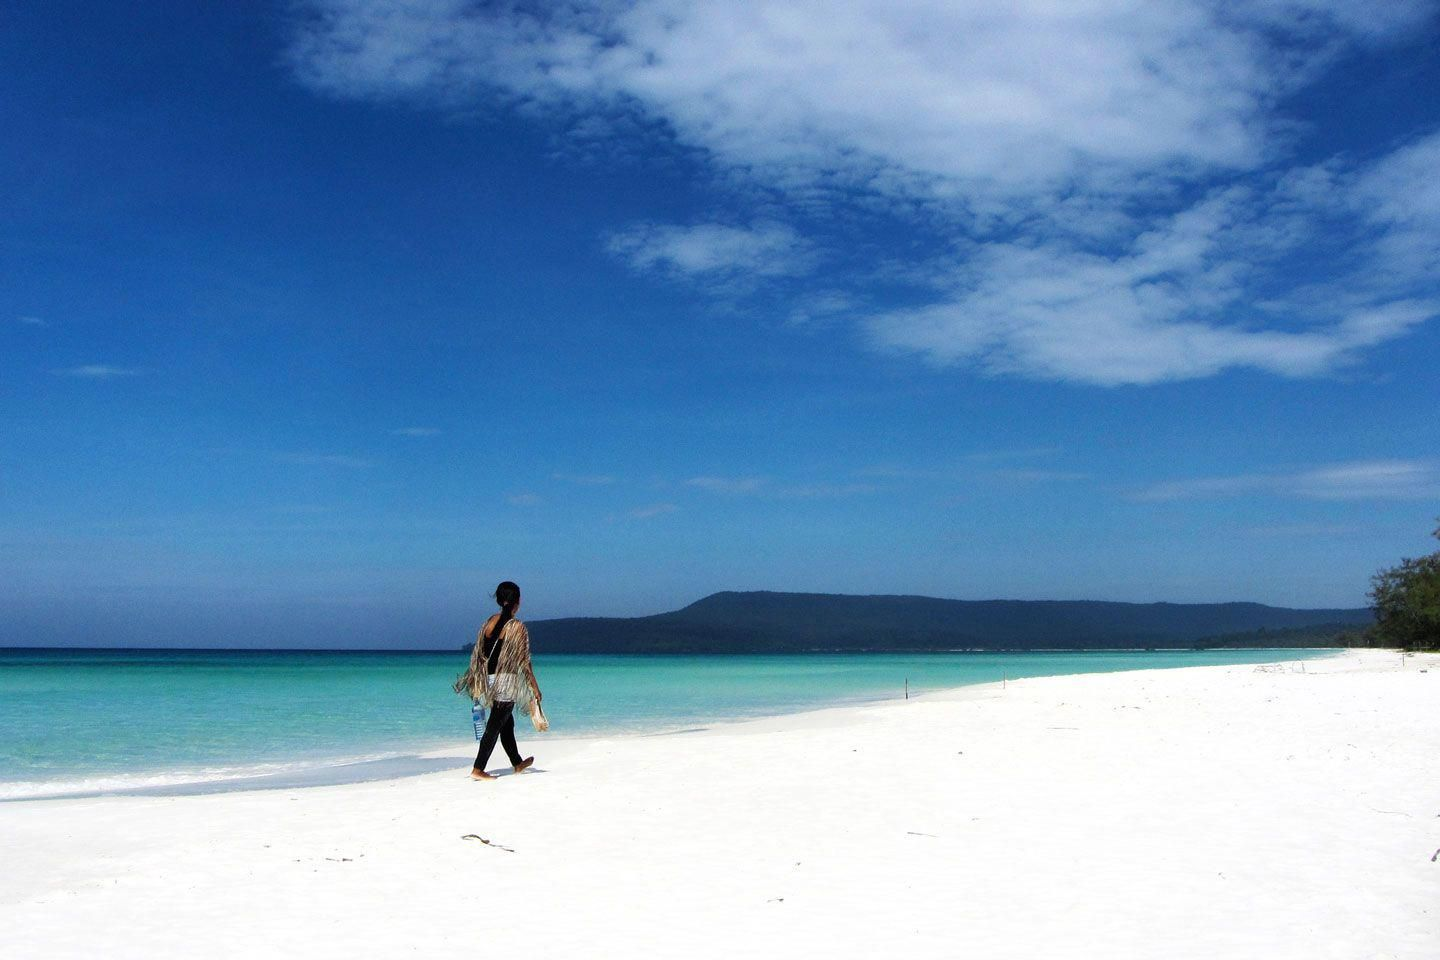 Heading to Cambodia? Although not as popular as other countries, Cambodia beaches are still worth visiting. Here is our guide to the best beaches and... #uniquescubadivingtraining